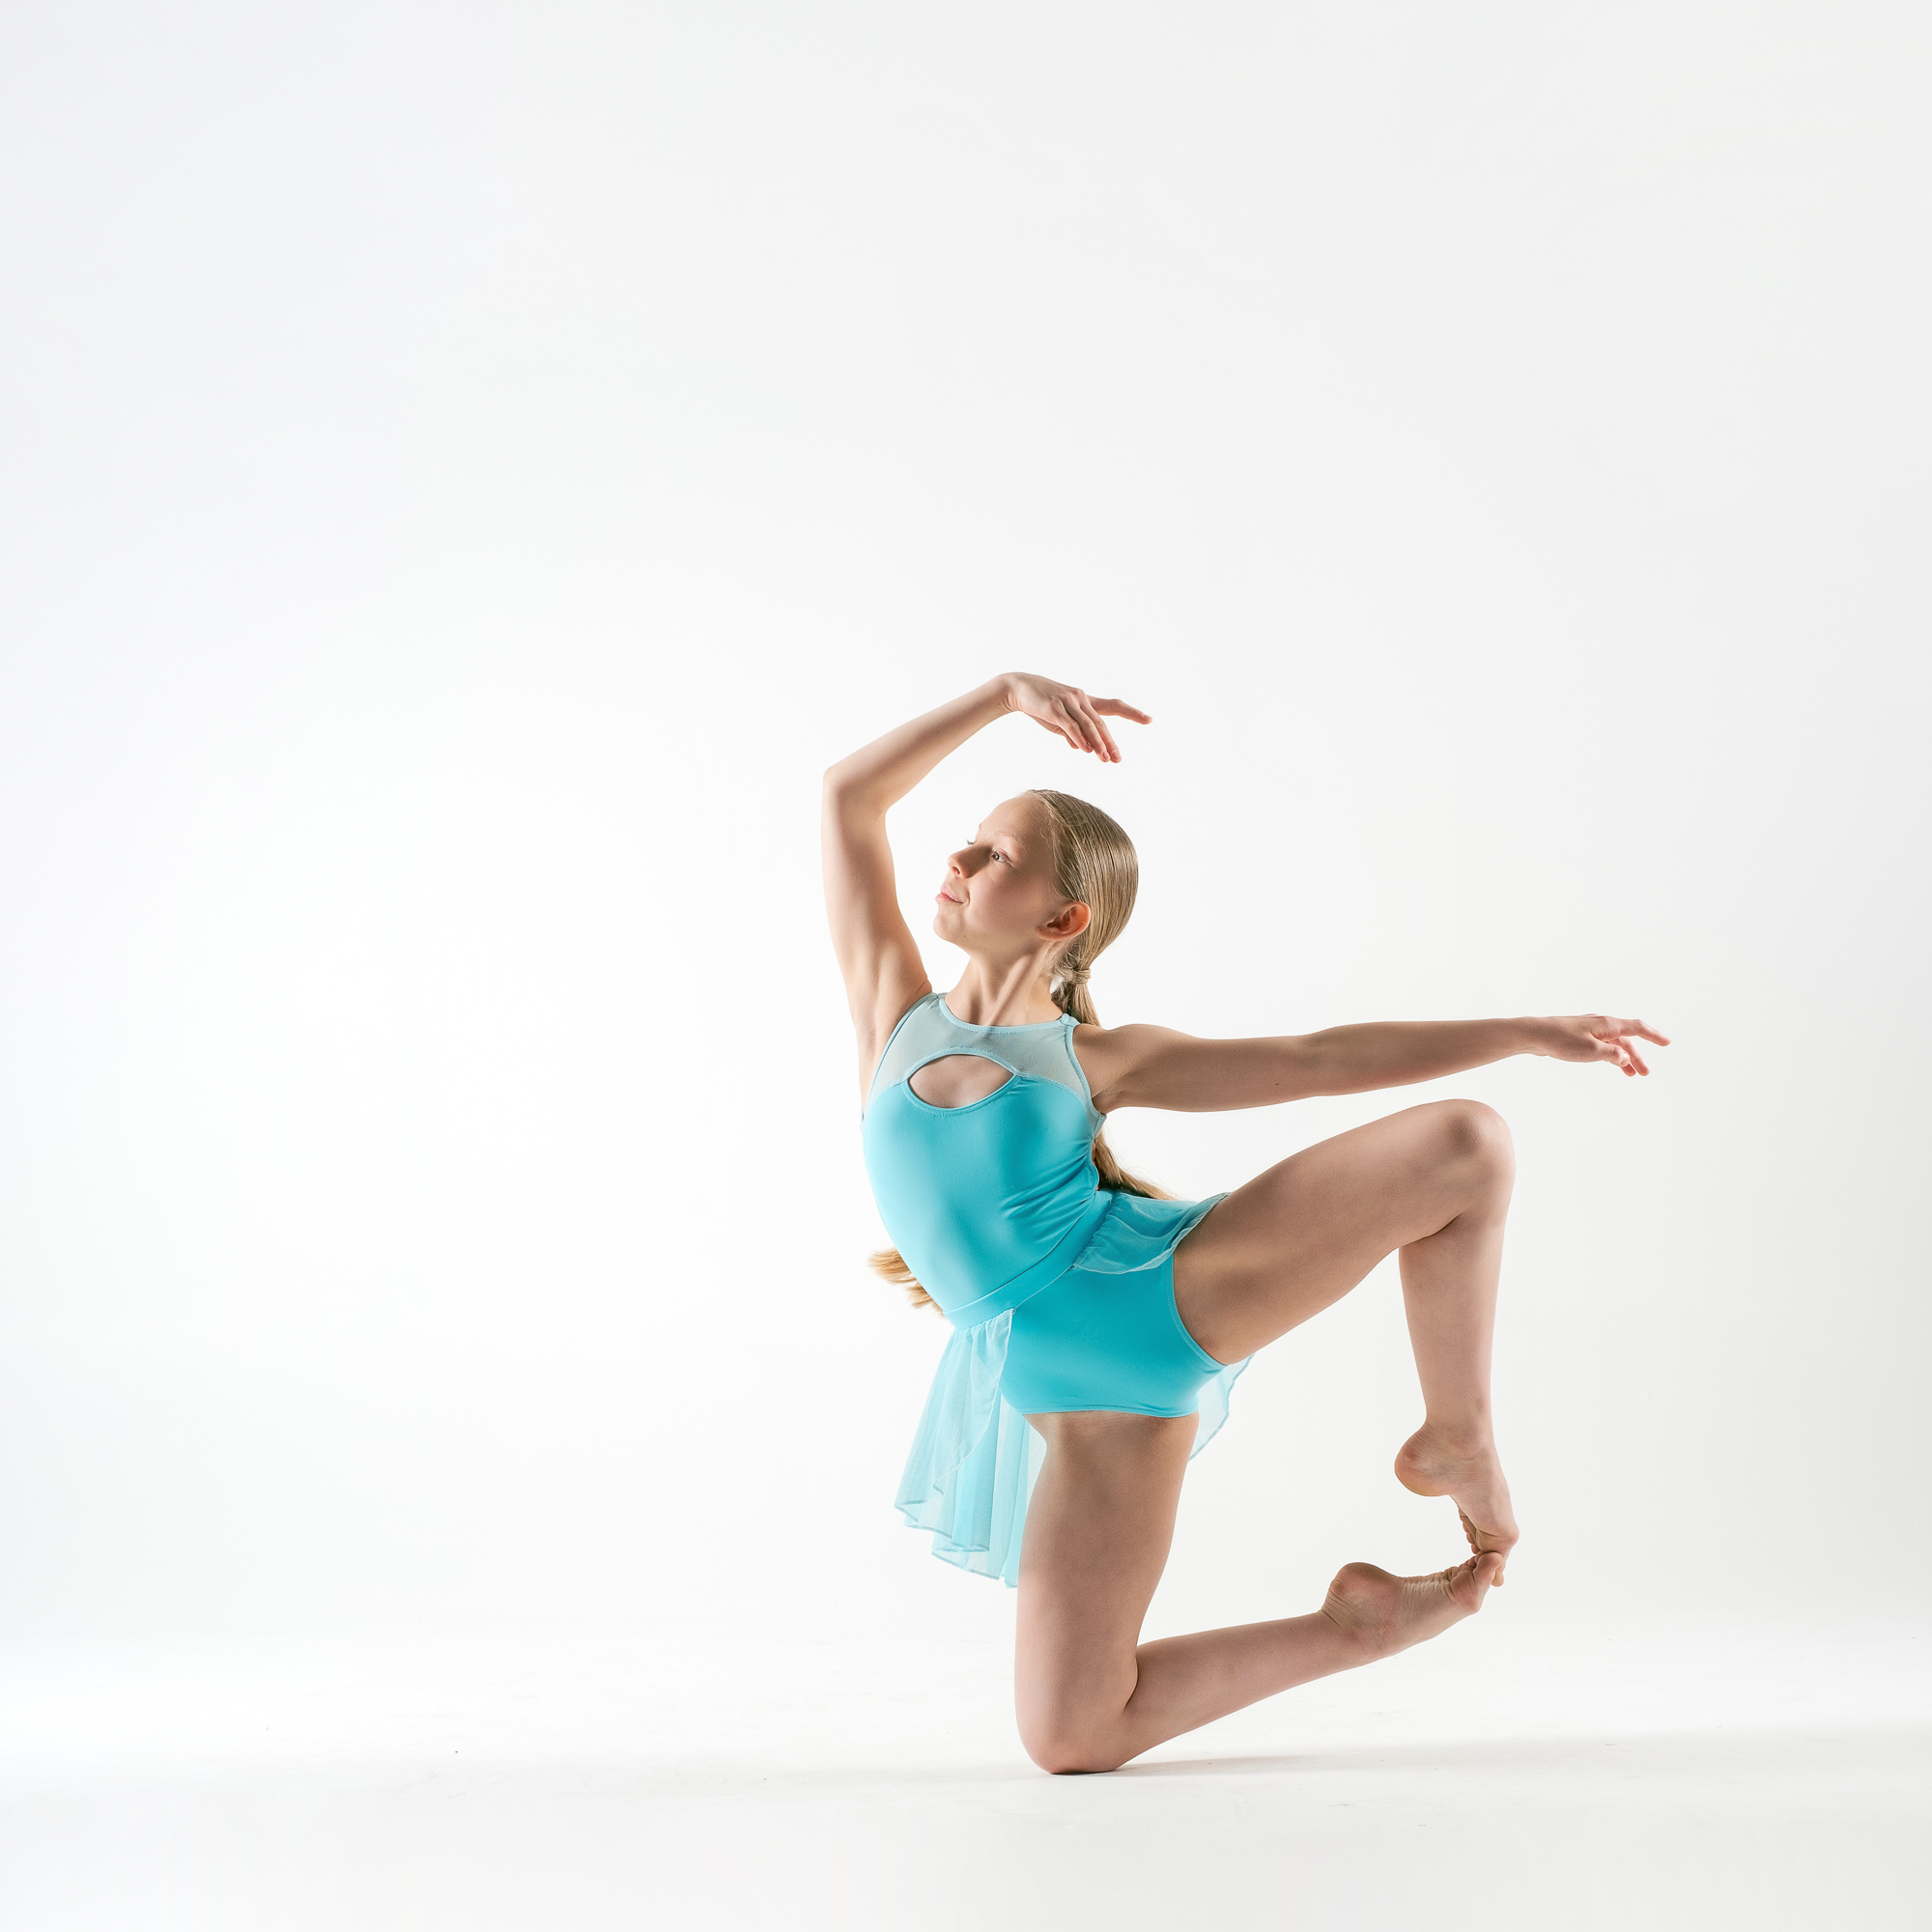 Suzi Bird Dance Photographer Bristol Clevedon London 11.jpg